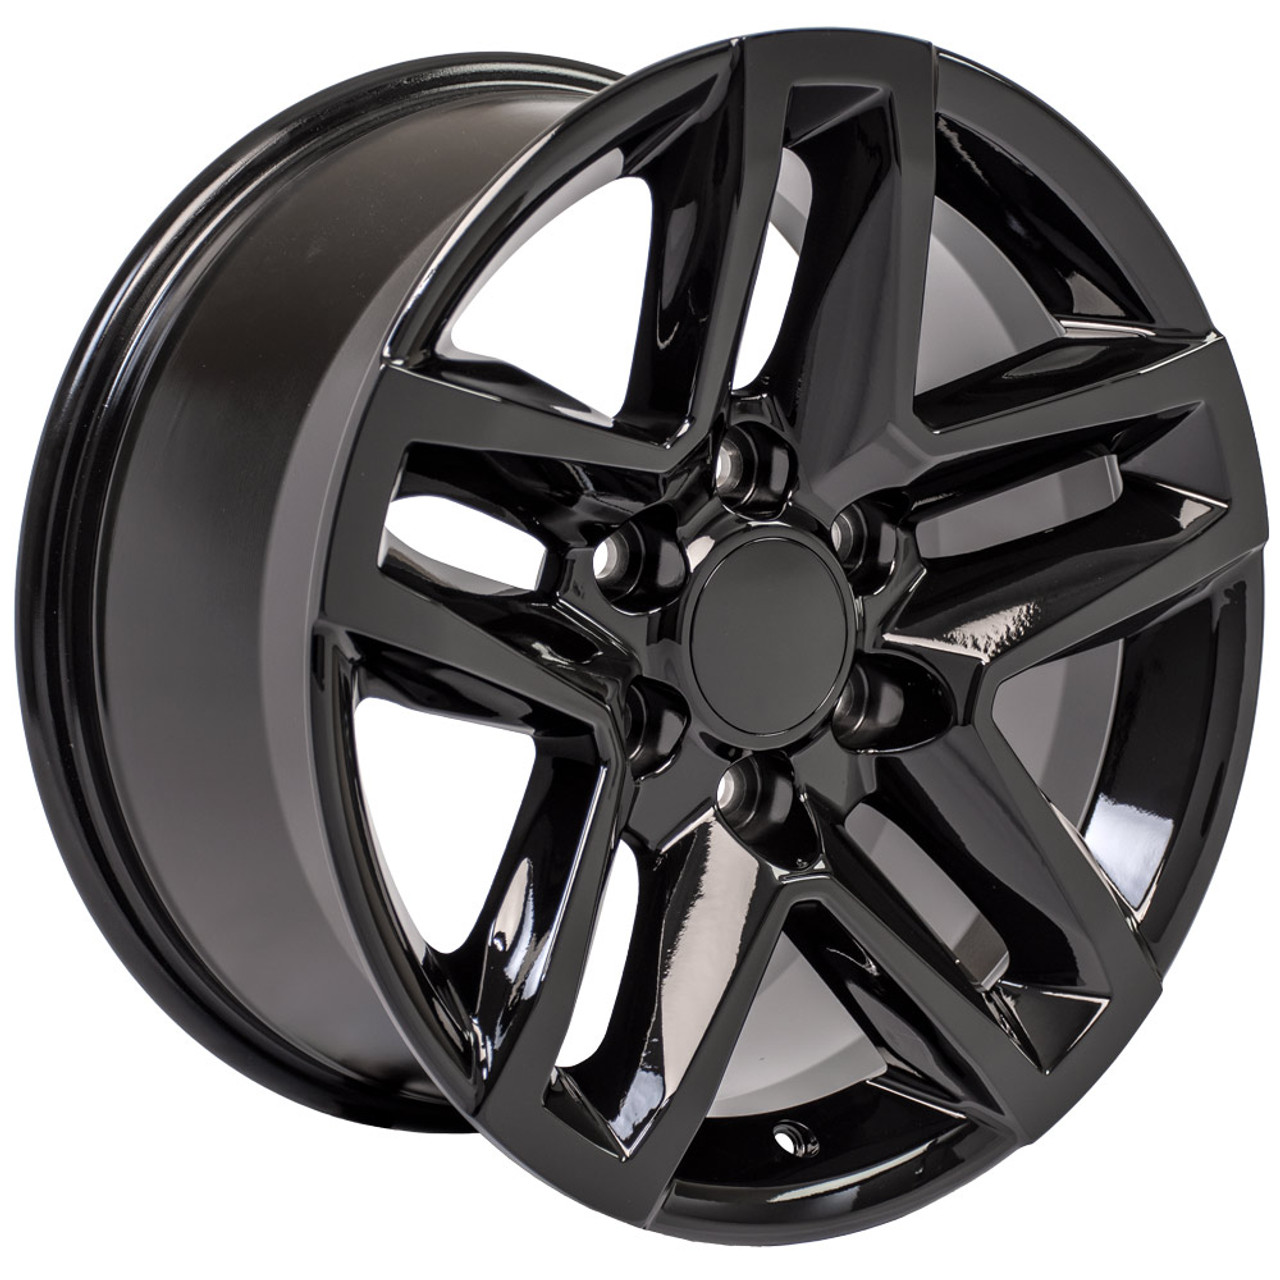 """Gloss Black 18"""" Trail Boss Style Wheels for Chevy and GMC Trucks and SUVs"""